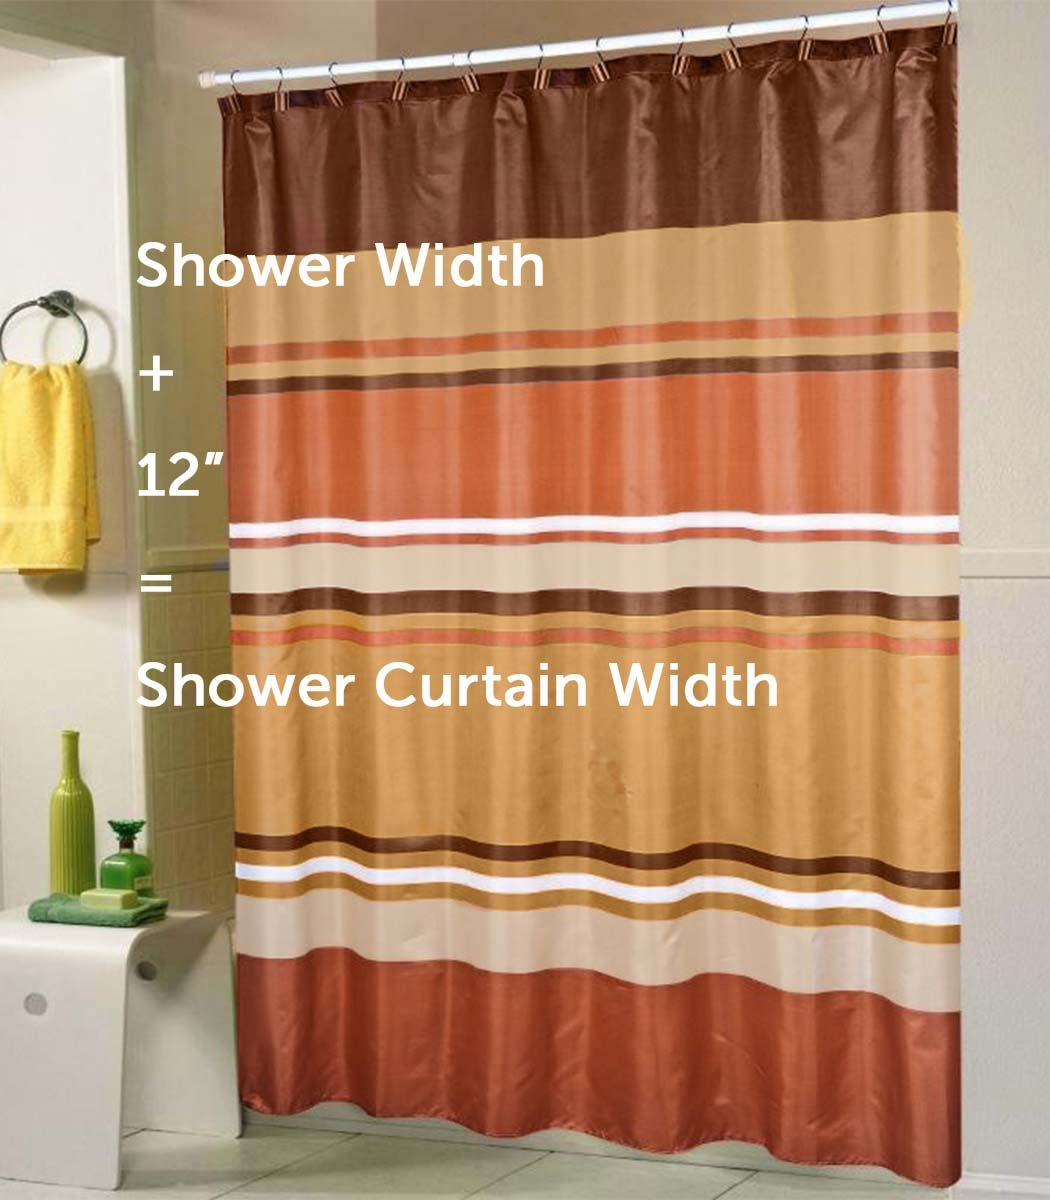 A Standard Shower Curtain Size Guide Shower Curtain Sizes